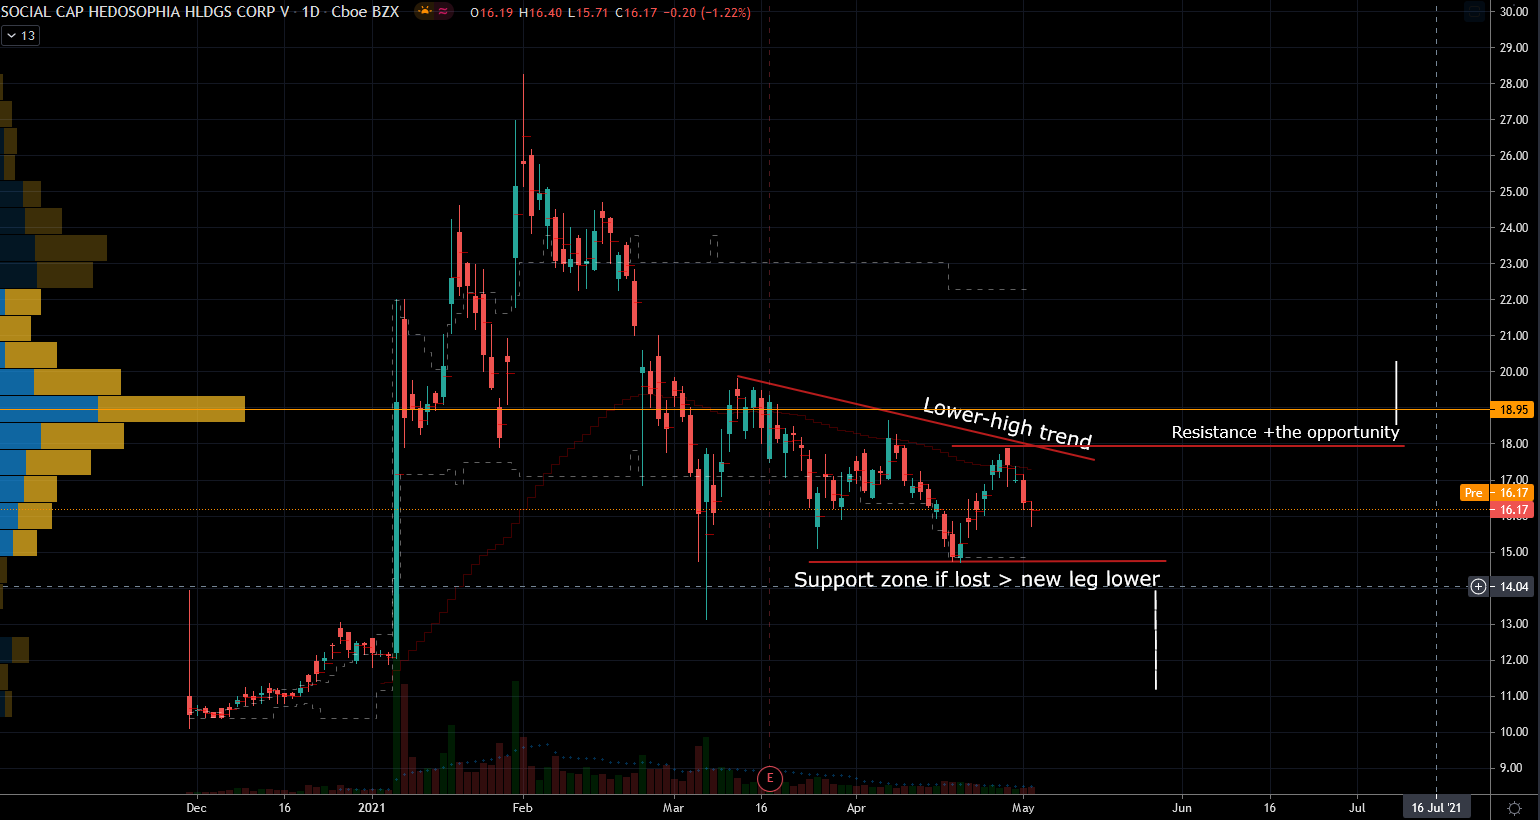 Social Capital Hedosophia Holdings Corp. (IPOE) Stock Chart Showing Potential Breakout Potential